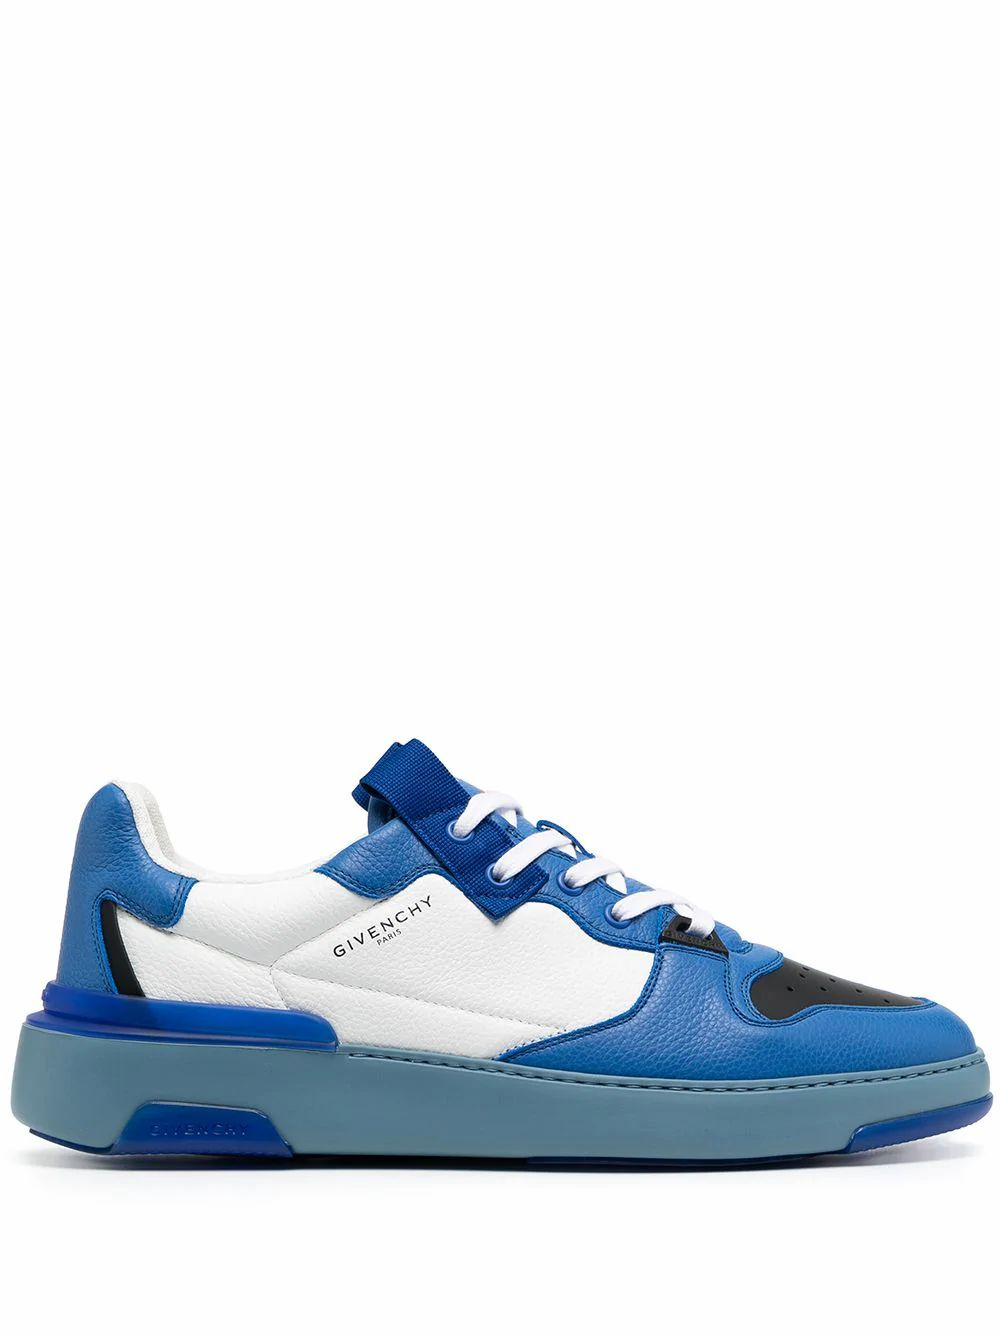 Givenchy GIVENCHY MEN'S BLUE LEATHER SNEAKERS